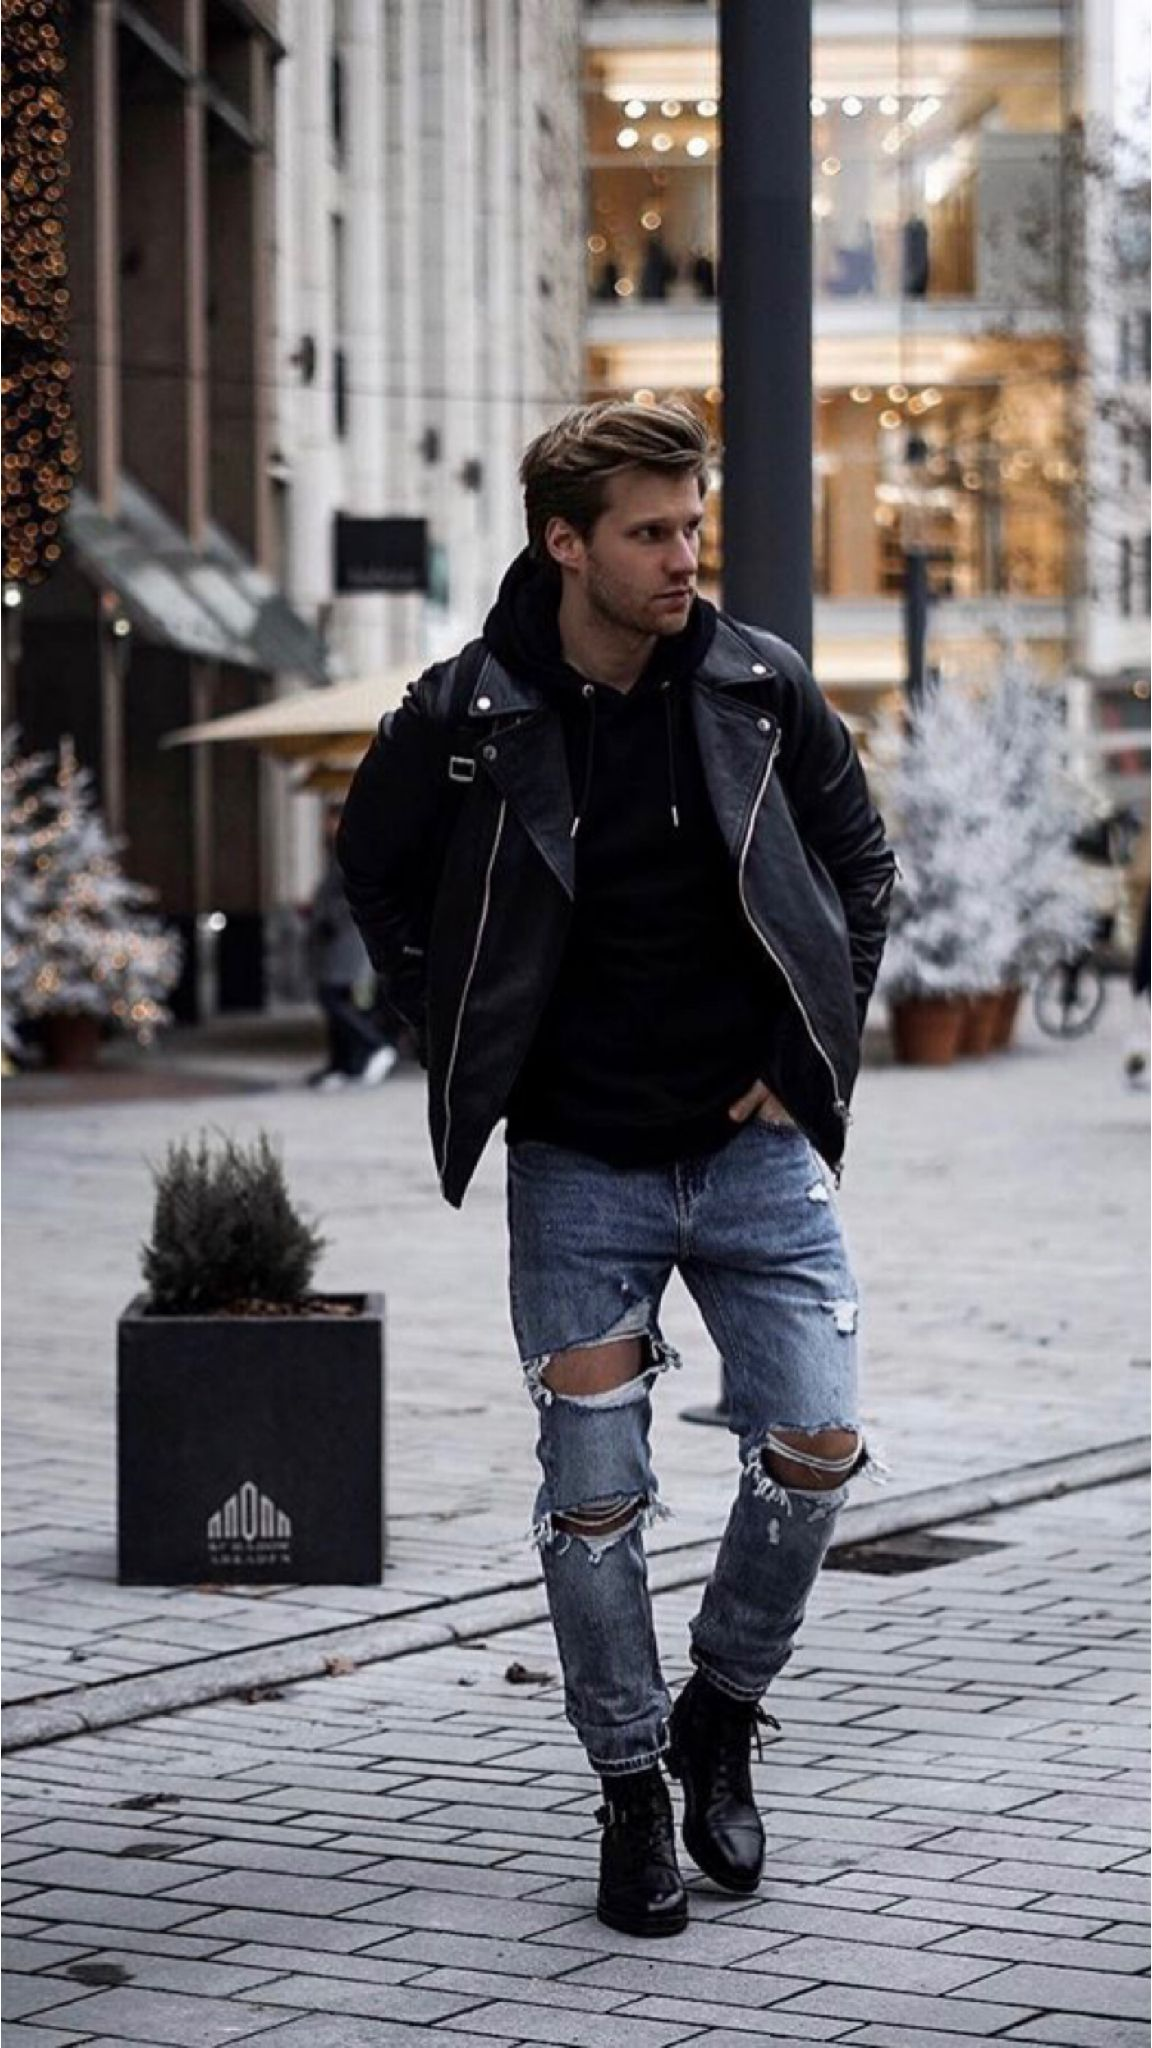 23 Outfits You Should Copy From This Influencer Blue Ripped Jeans Outfit Blue Jacket Outfits Men Leather Jacket Outfit Men [ 2048 x 1152 Pixel ]